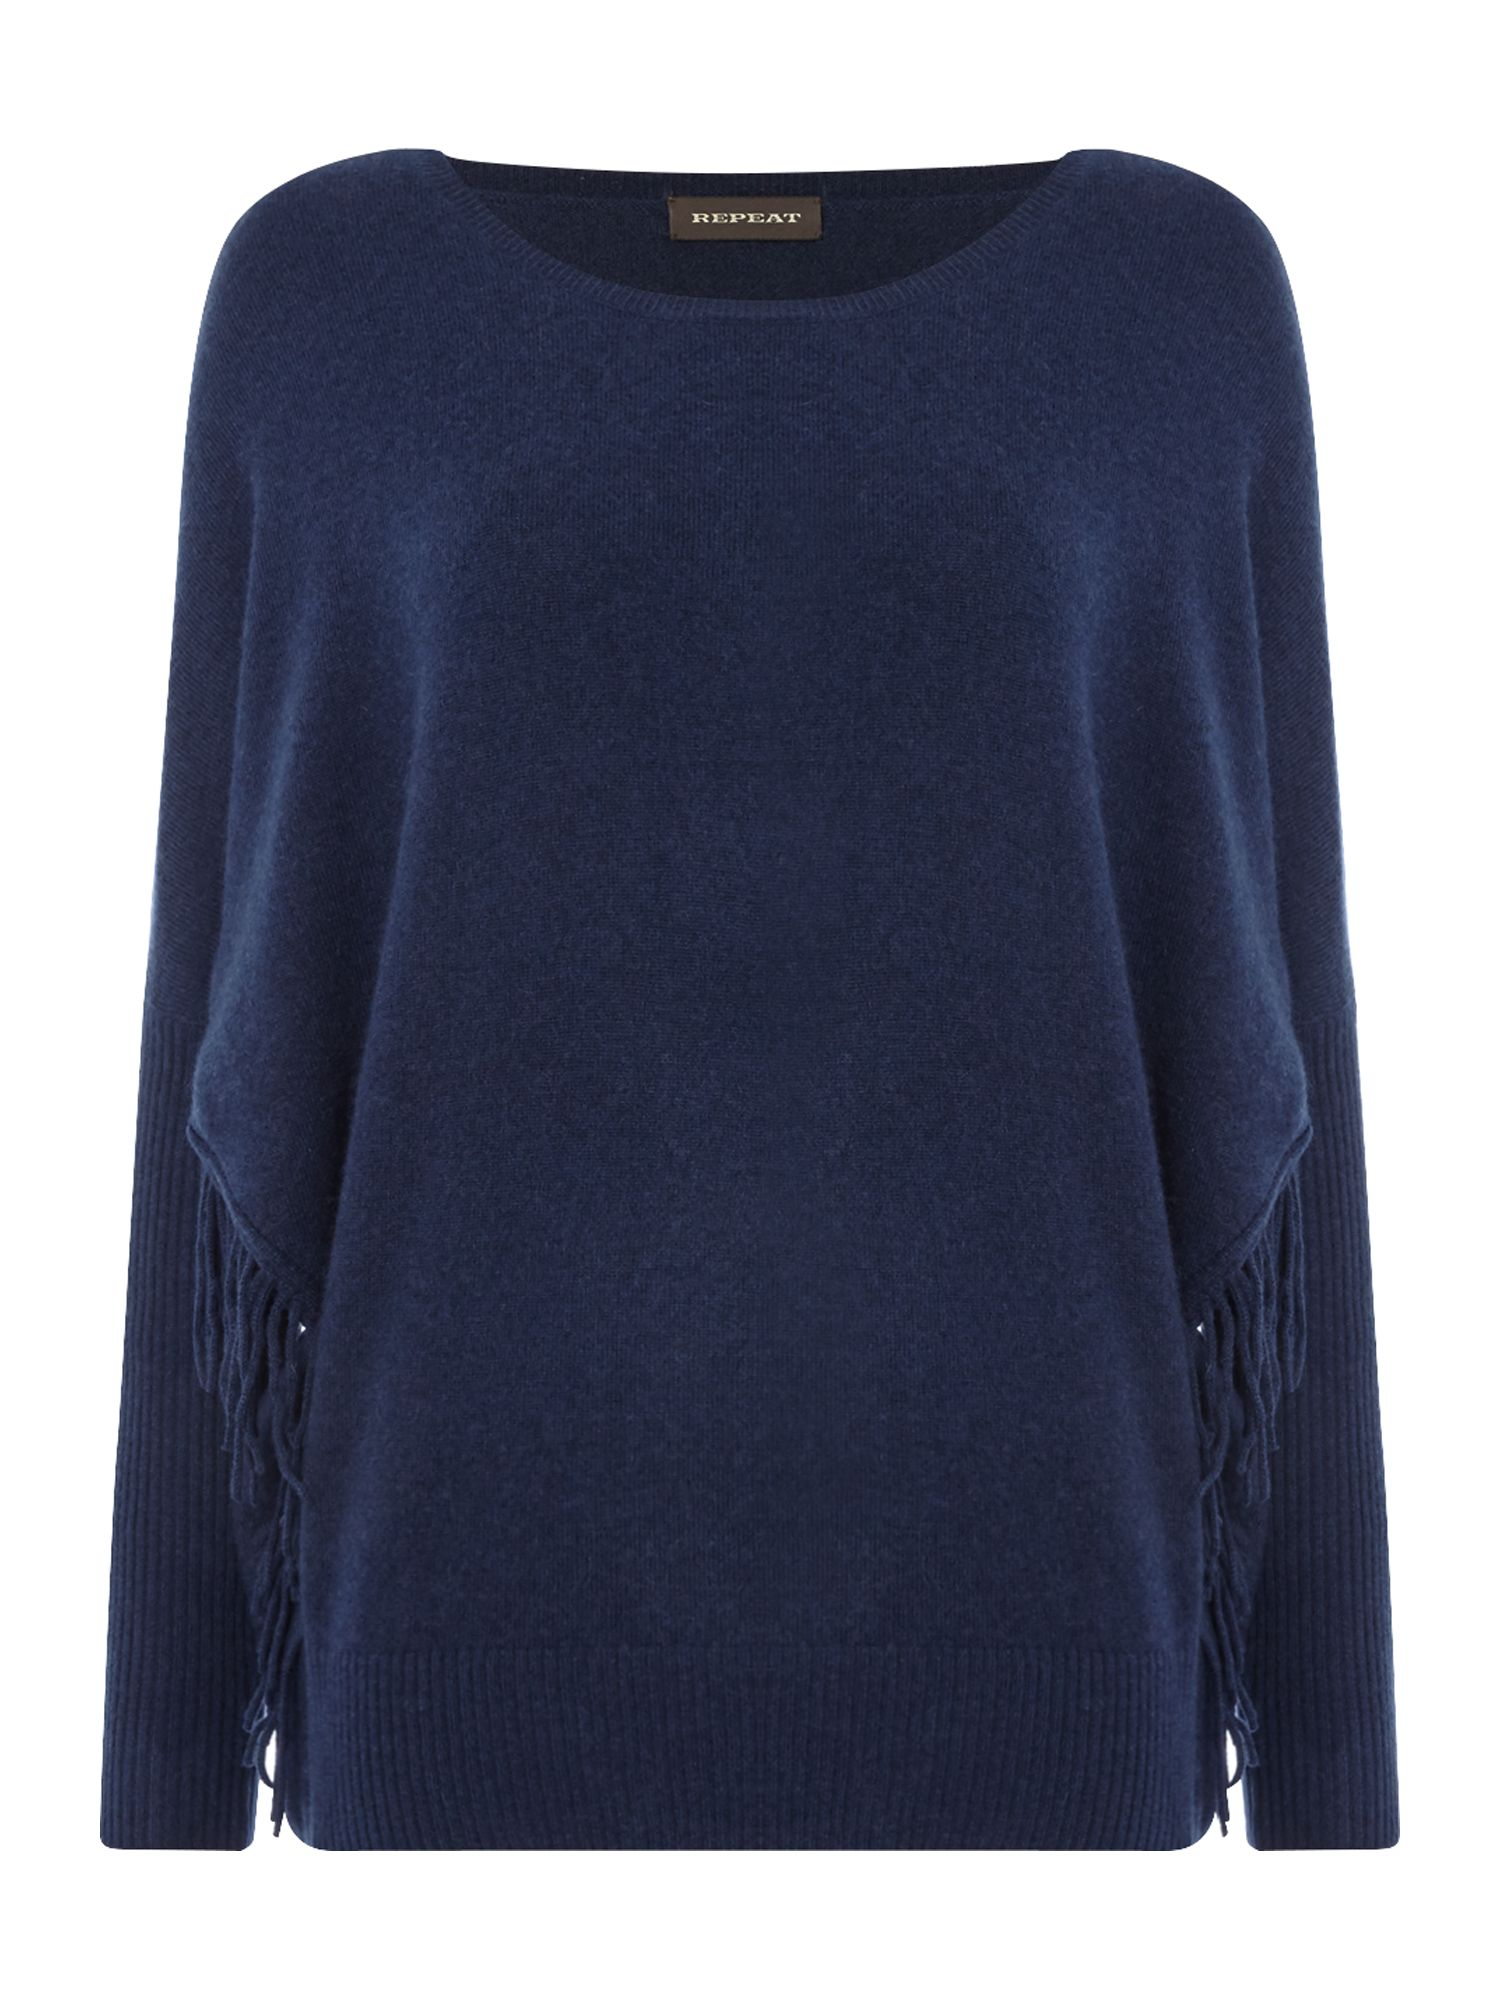 Repeat Cashmere Repeat Cashmere Round neck side fringe jumper, Navy